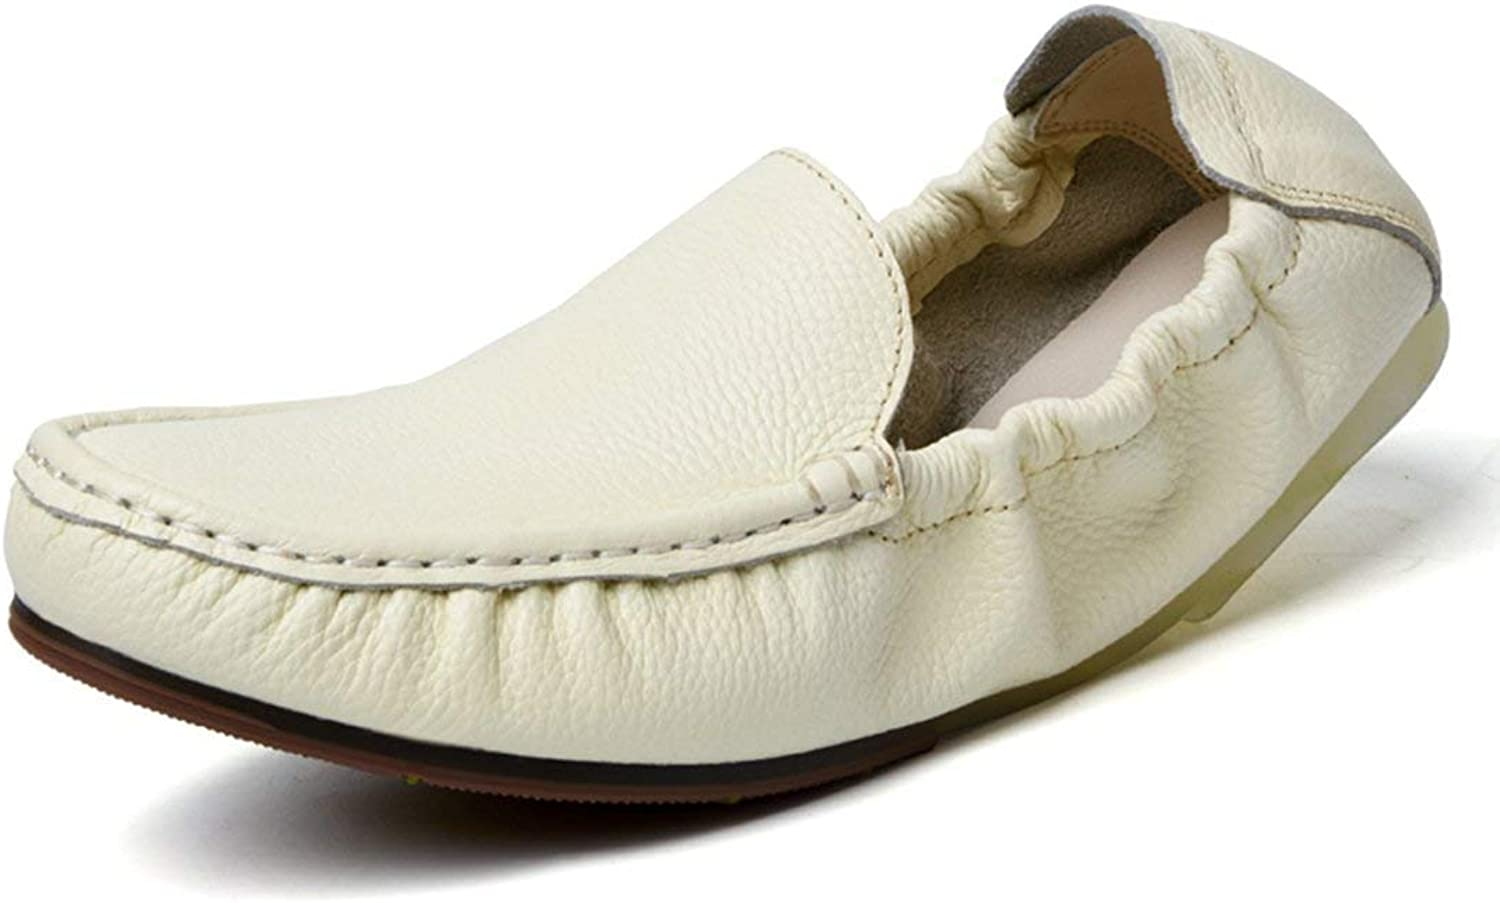 ZHRUI Boy's Men's Soft Slip On Comfortable Moccasins Casual Loafers (color   Fur Lined White, Size   6.5 UK)